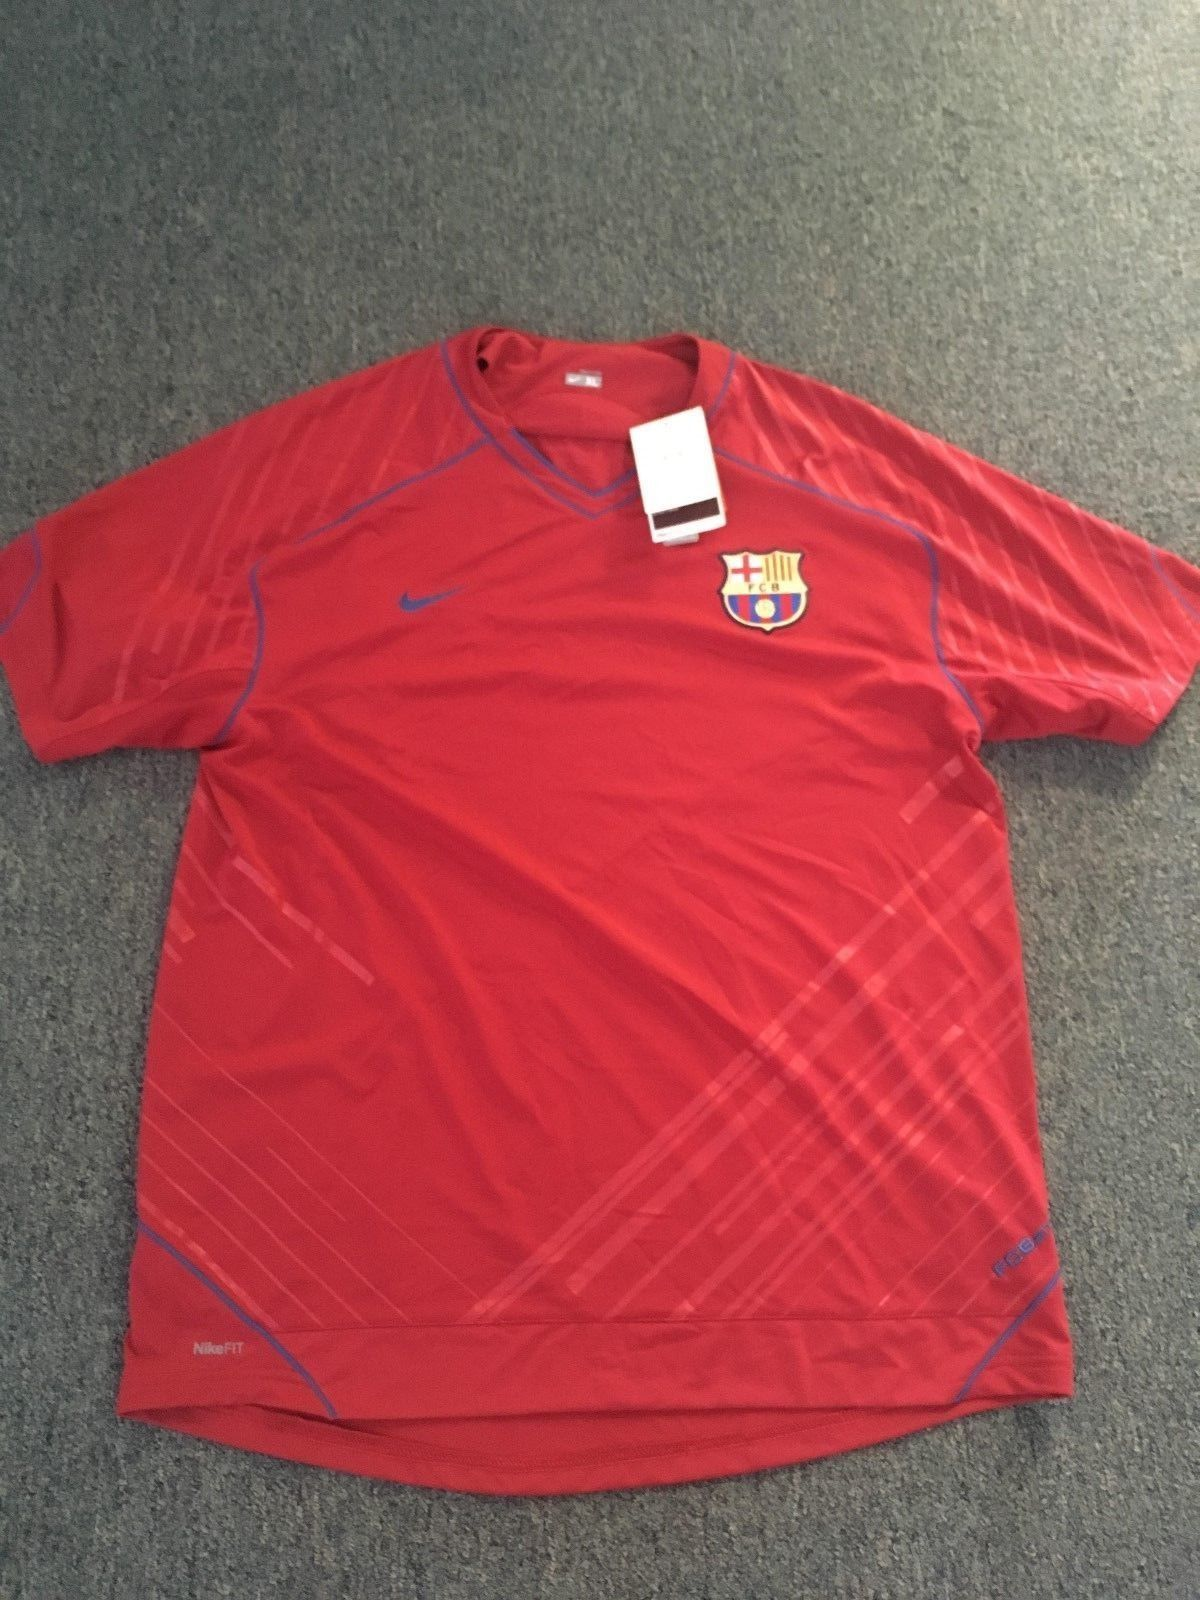 a52af253a 2018 FIFA World Cup NIKE Jersey Barcelona SPAIN (RED) kit (Men Size ...